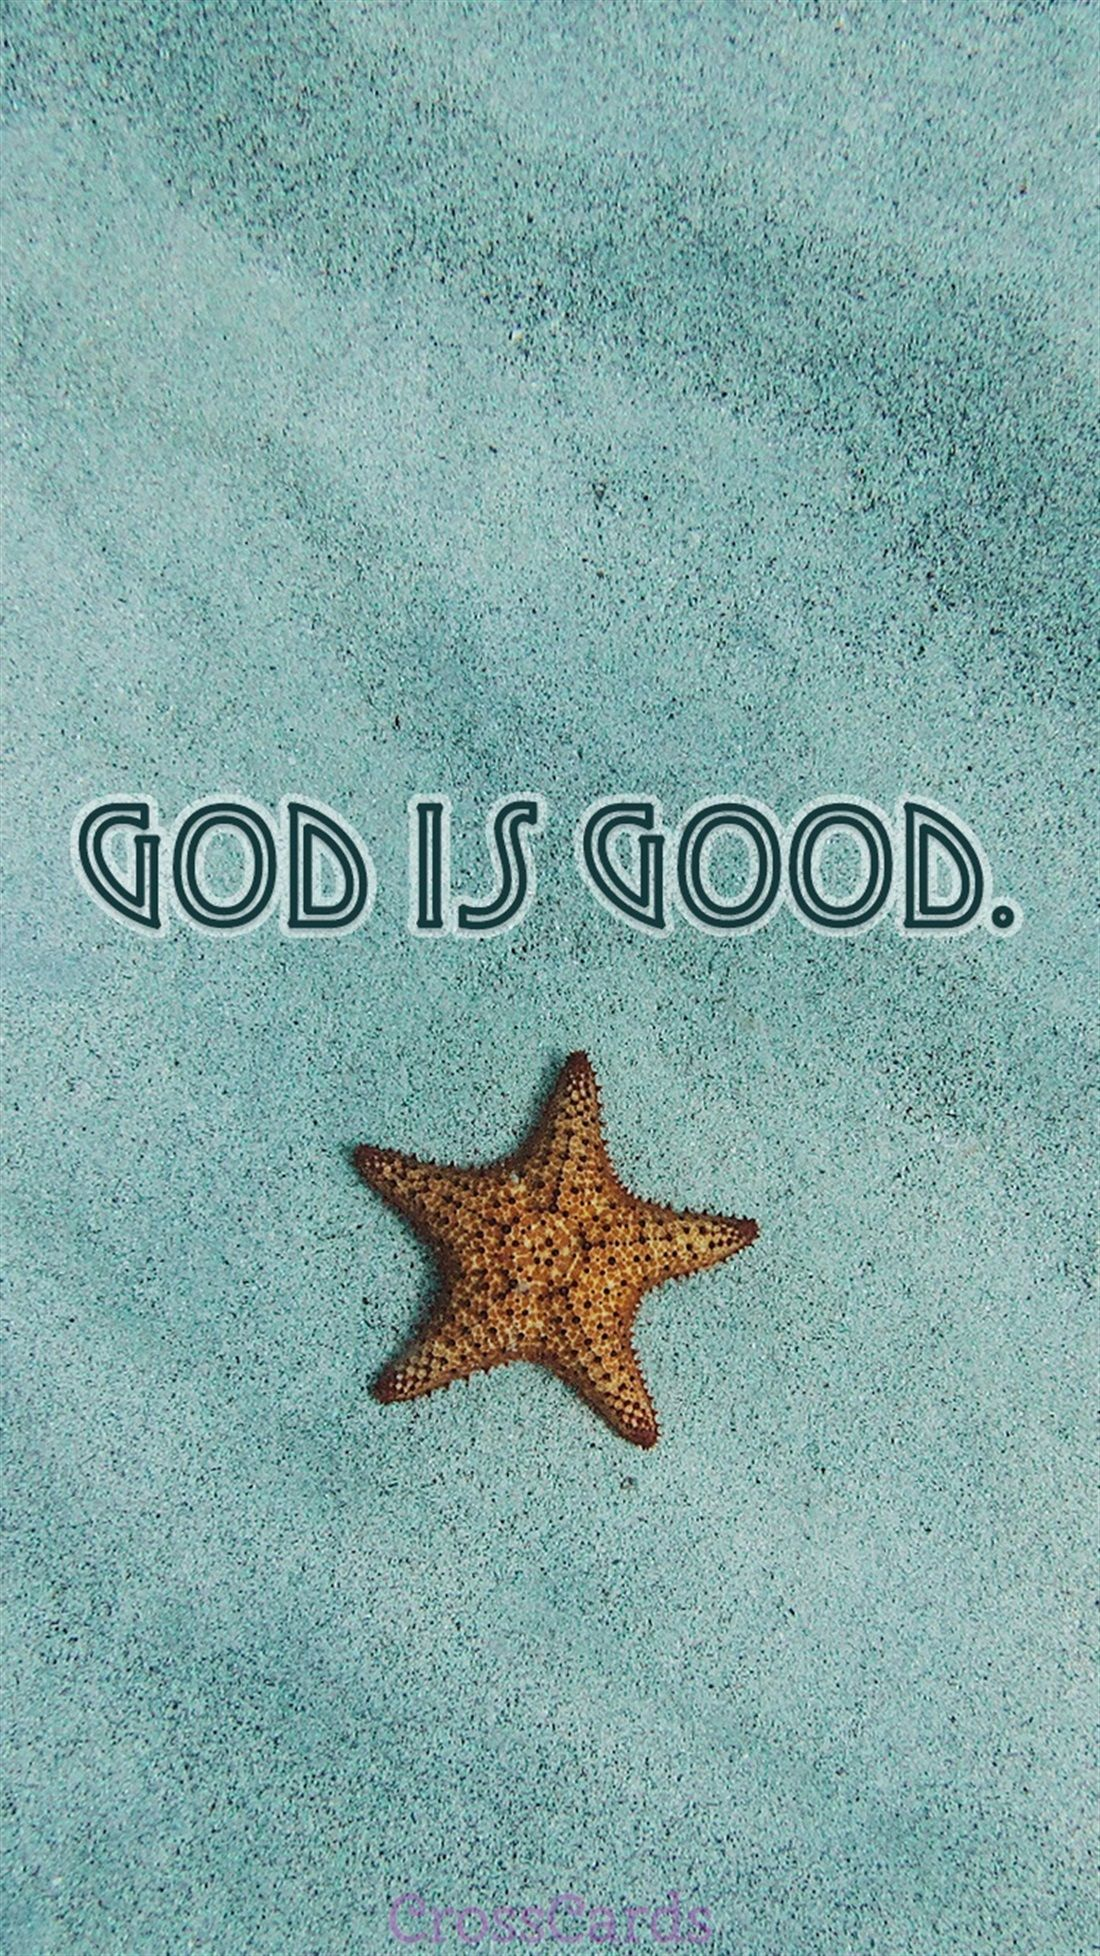 God Is Good With Images Christian Wallpaper